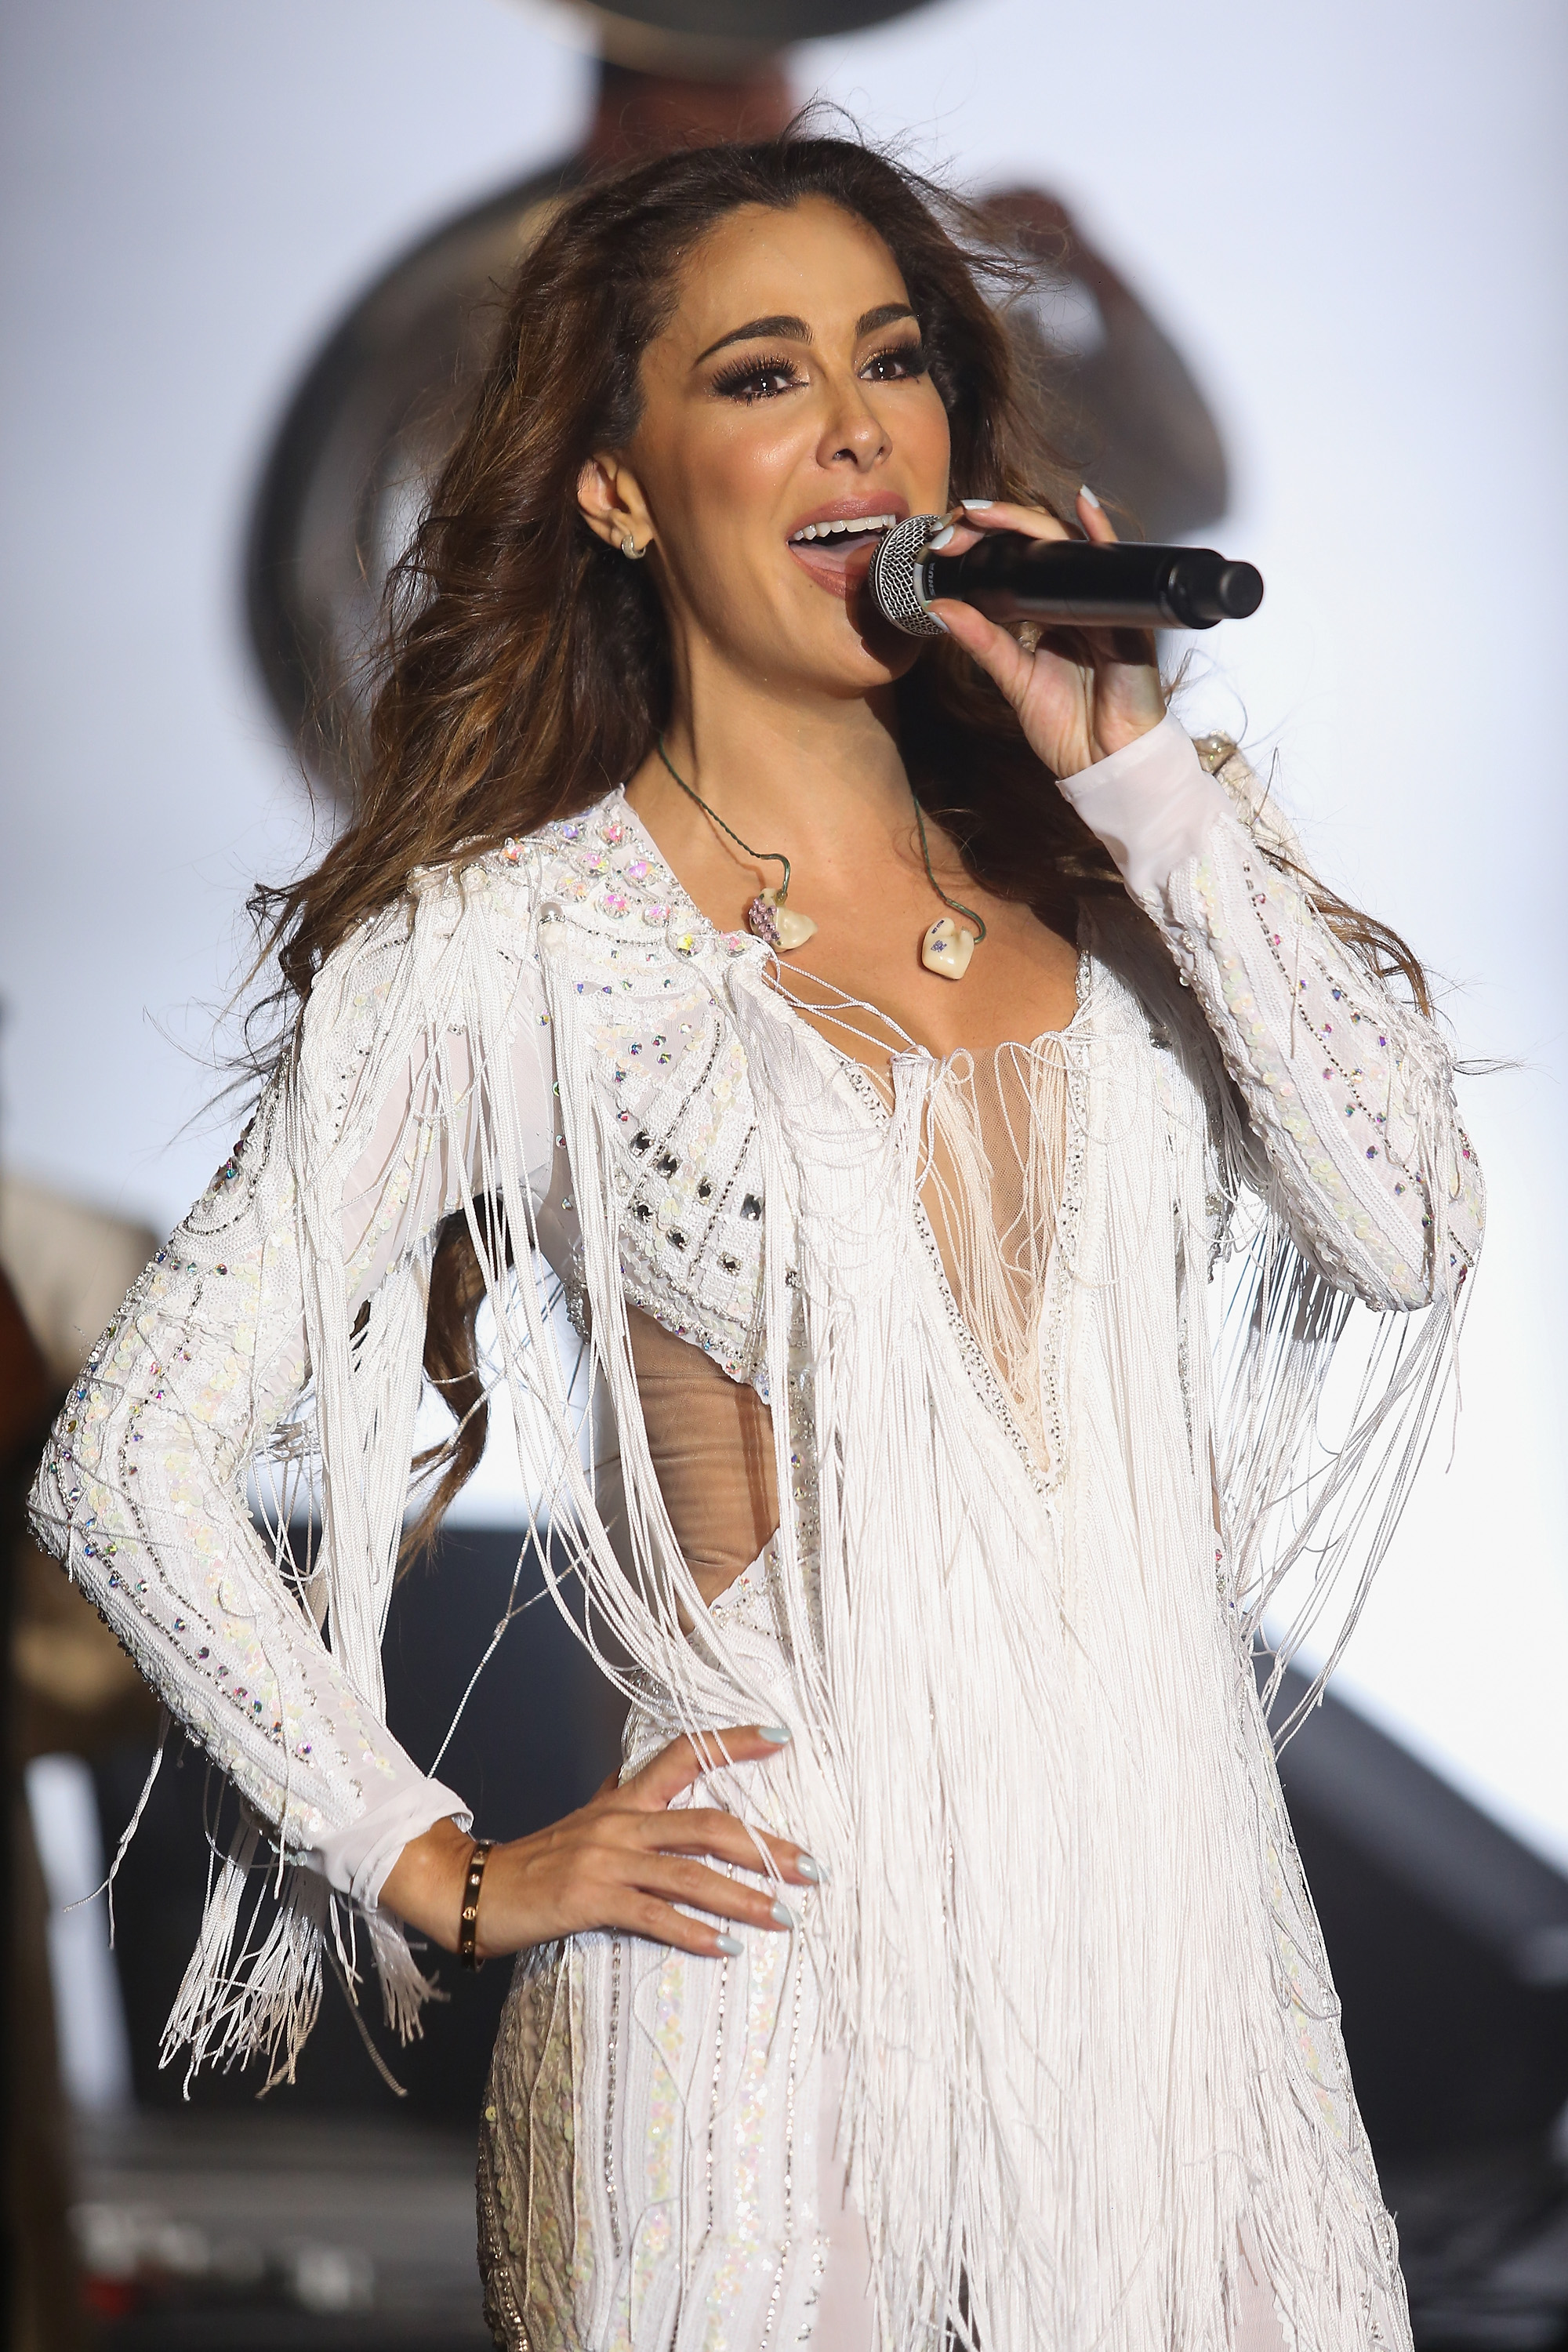 """Ninel Conde Launches Her New Single """"Te Pesara"""" - Press Conference And Showcase"""